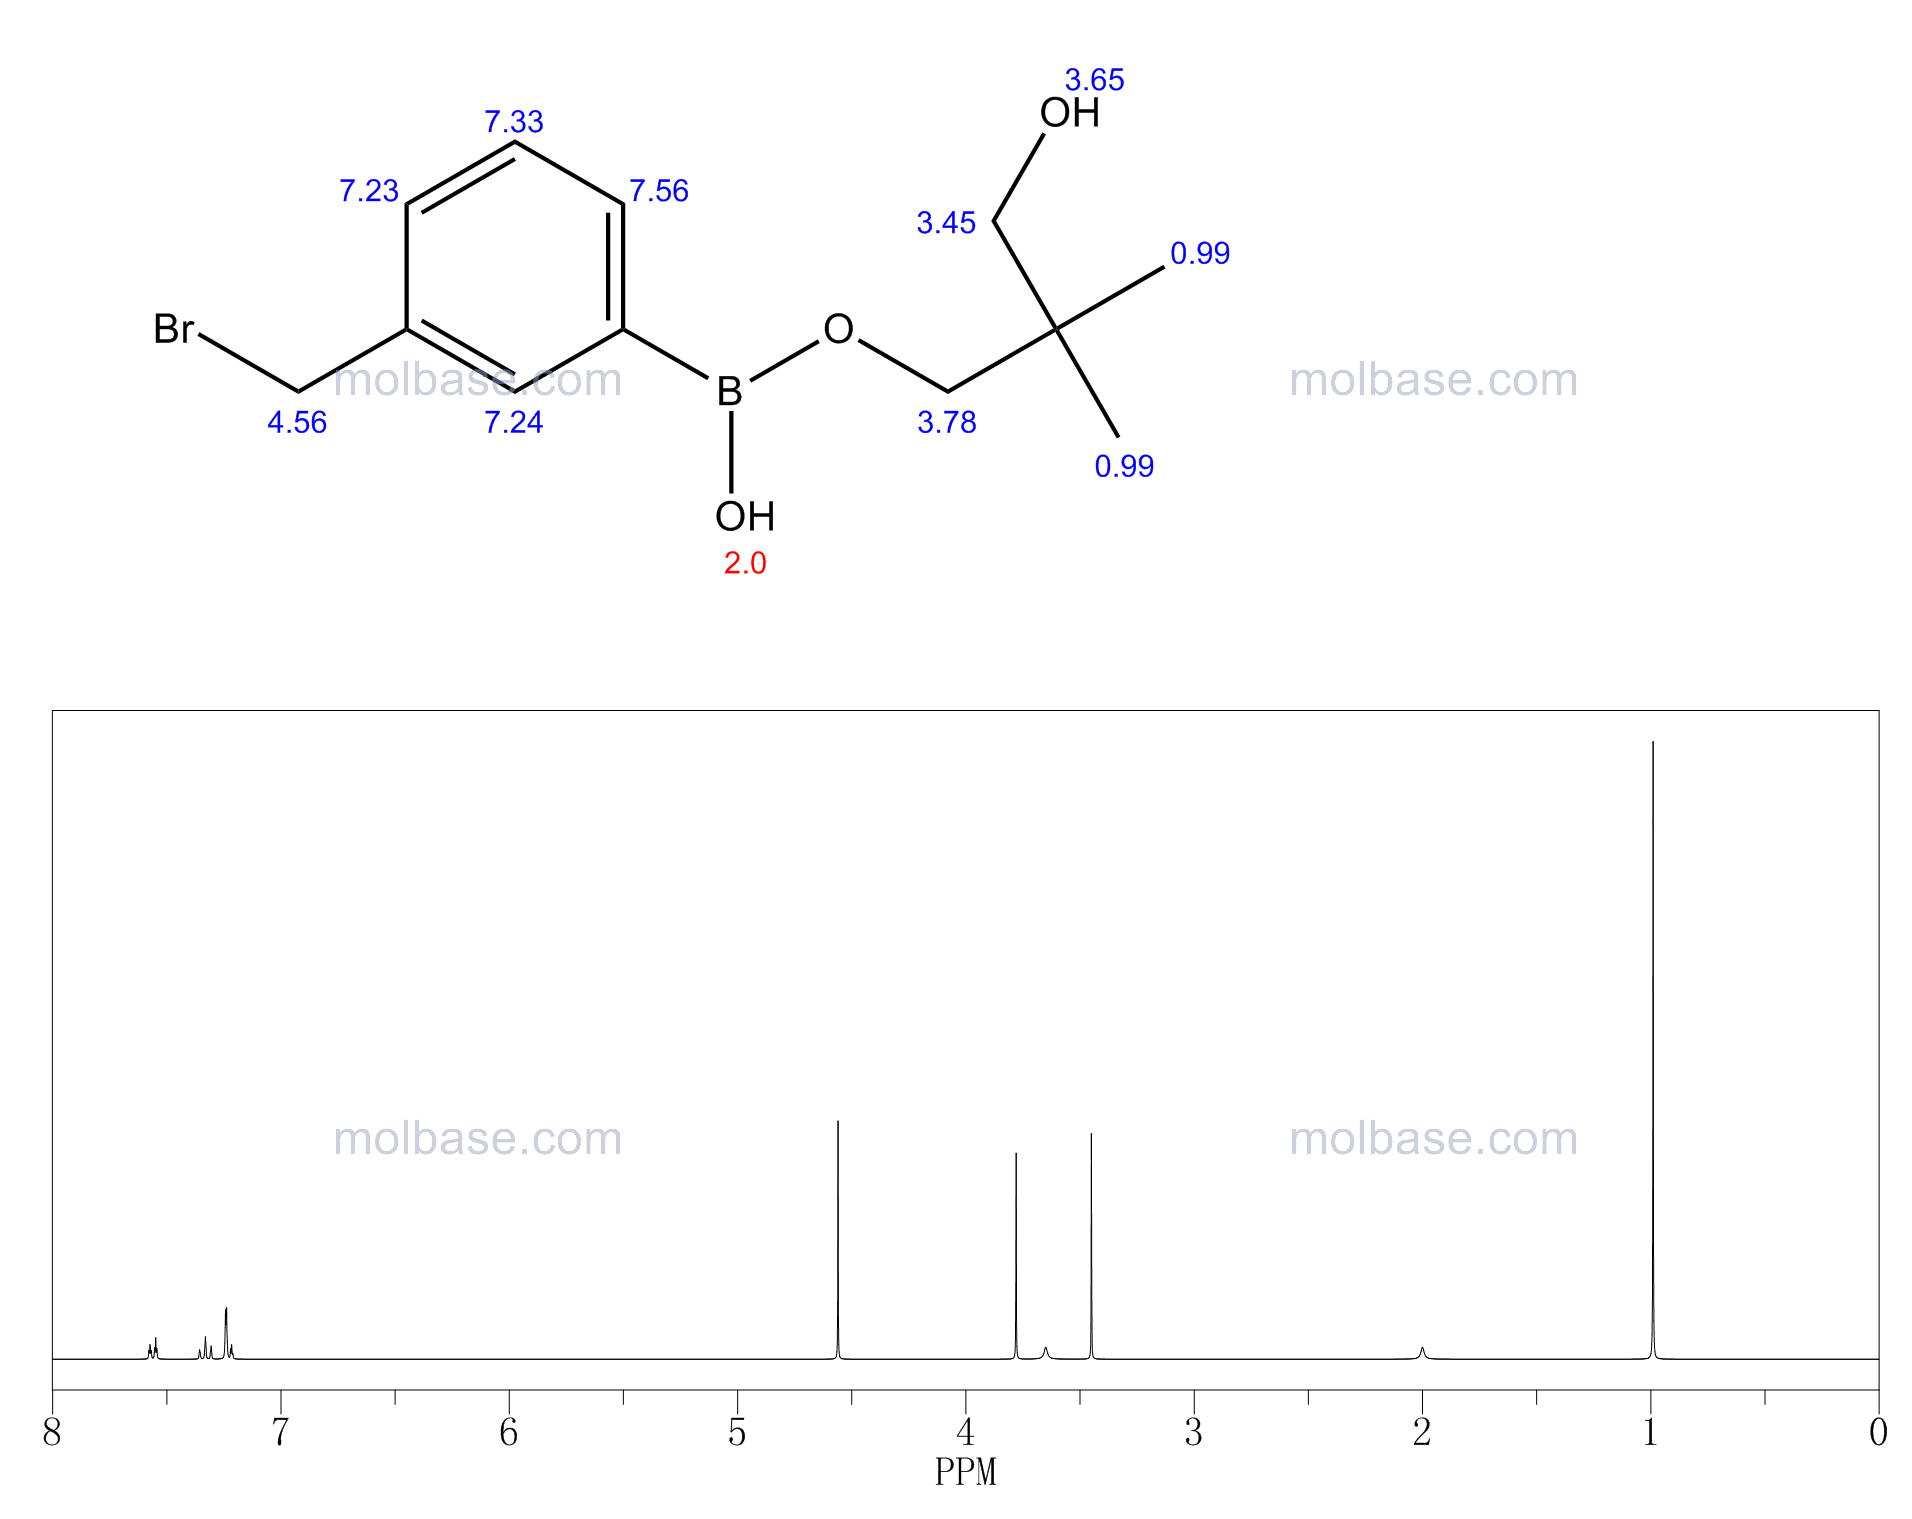 3-Bromomethylphenylboronic acid, neopentyl glycol ester NMR spectra analysis, Chemical CAS NO. 143805-78-1 NMR spectral analysis, 3-Bromomethylphenylboronic acid, neopentyl glycol ester C-NMR spectrum